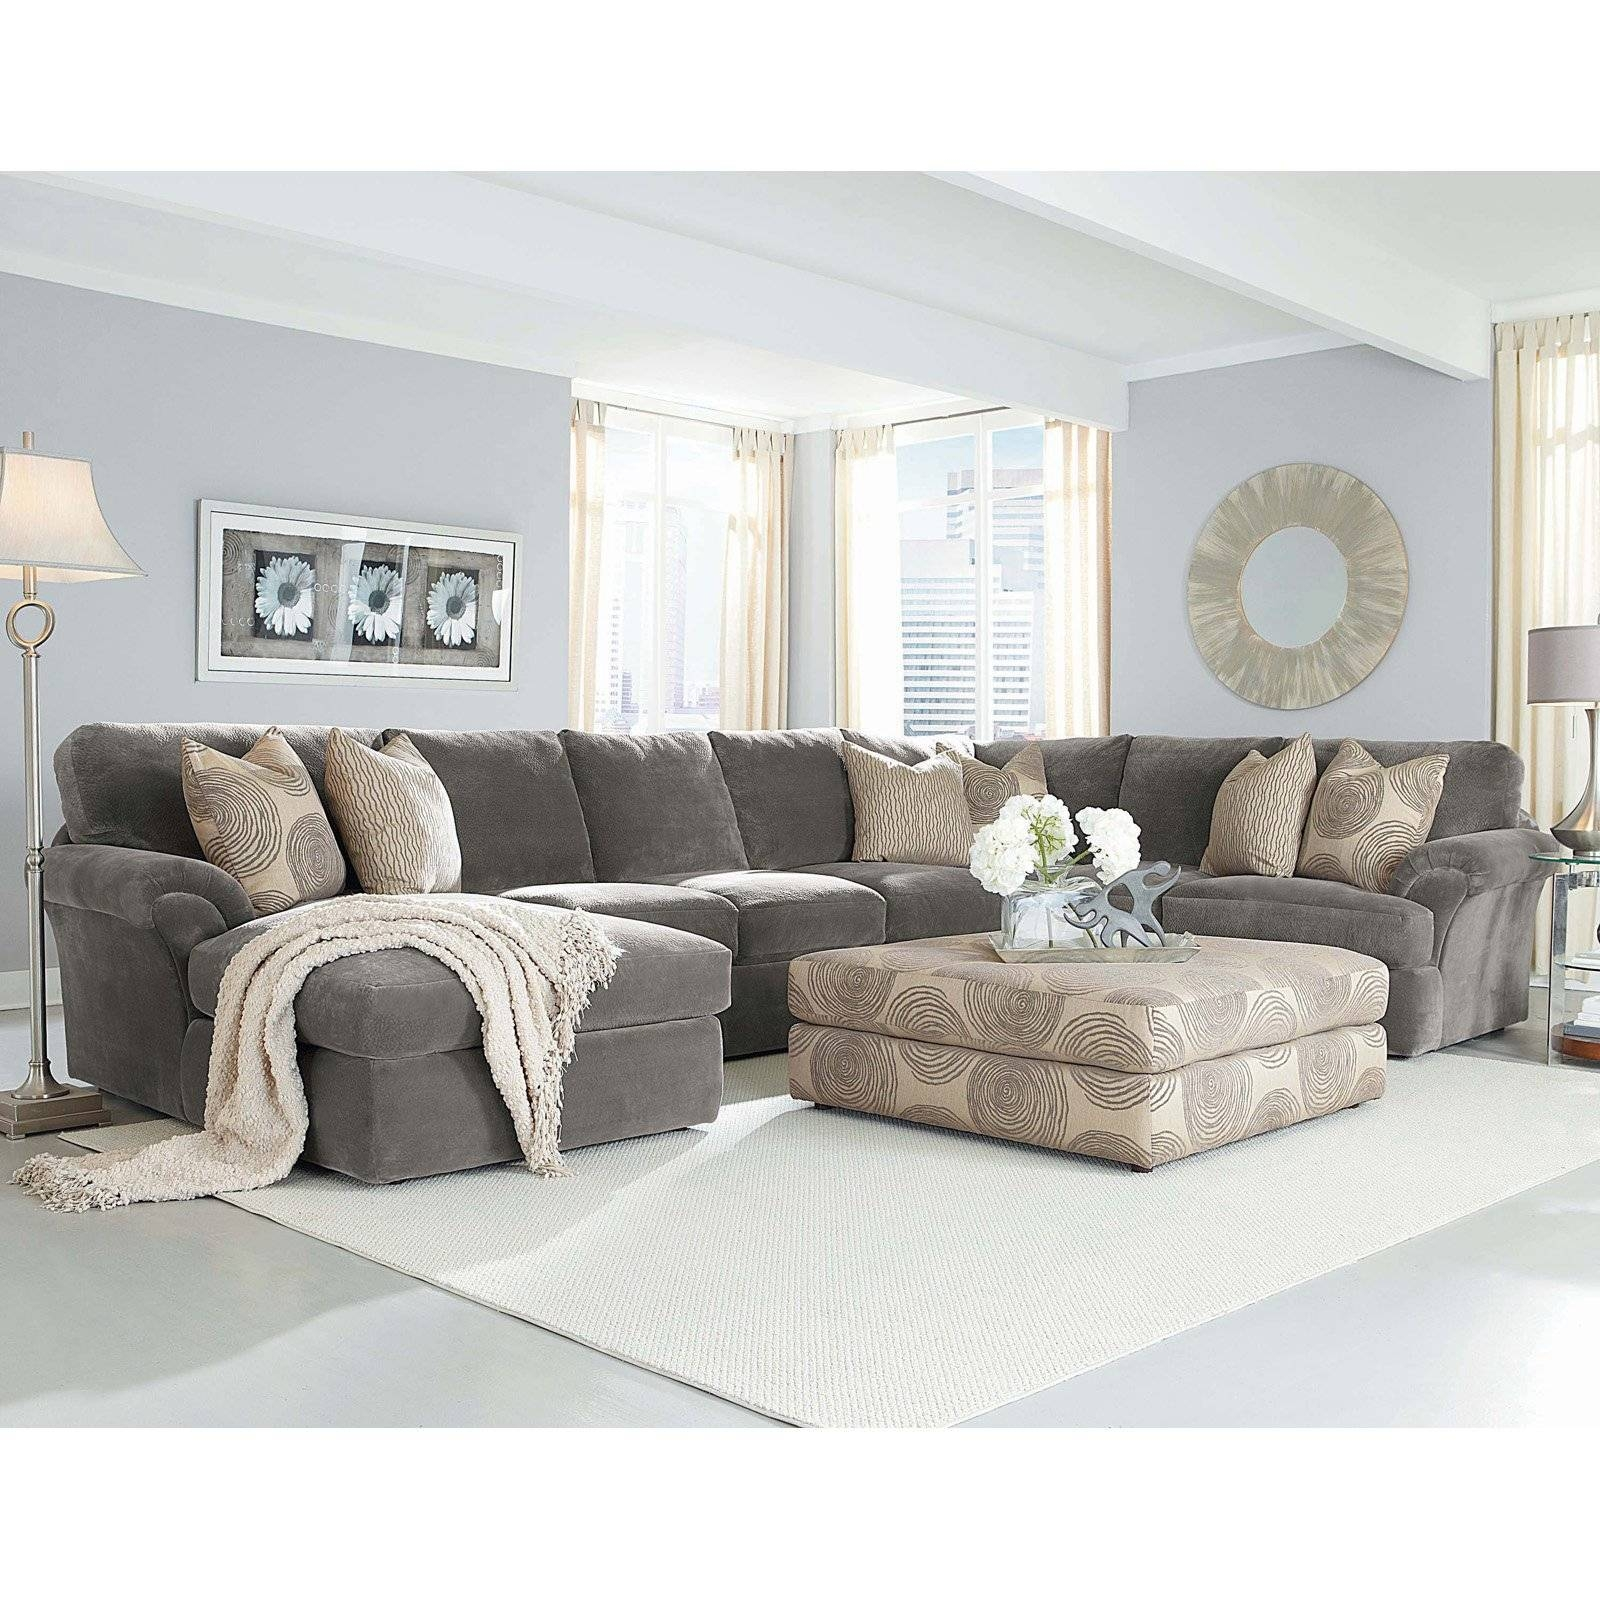 Awesome Bradley Sectional Sofa 99 For Motion Sectional Sofas With inside Champion Sectional Sofa (Image 6 of 30)